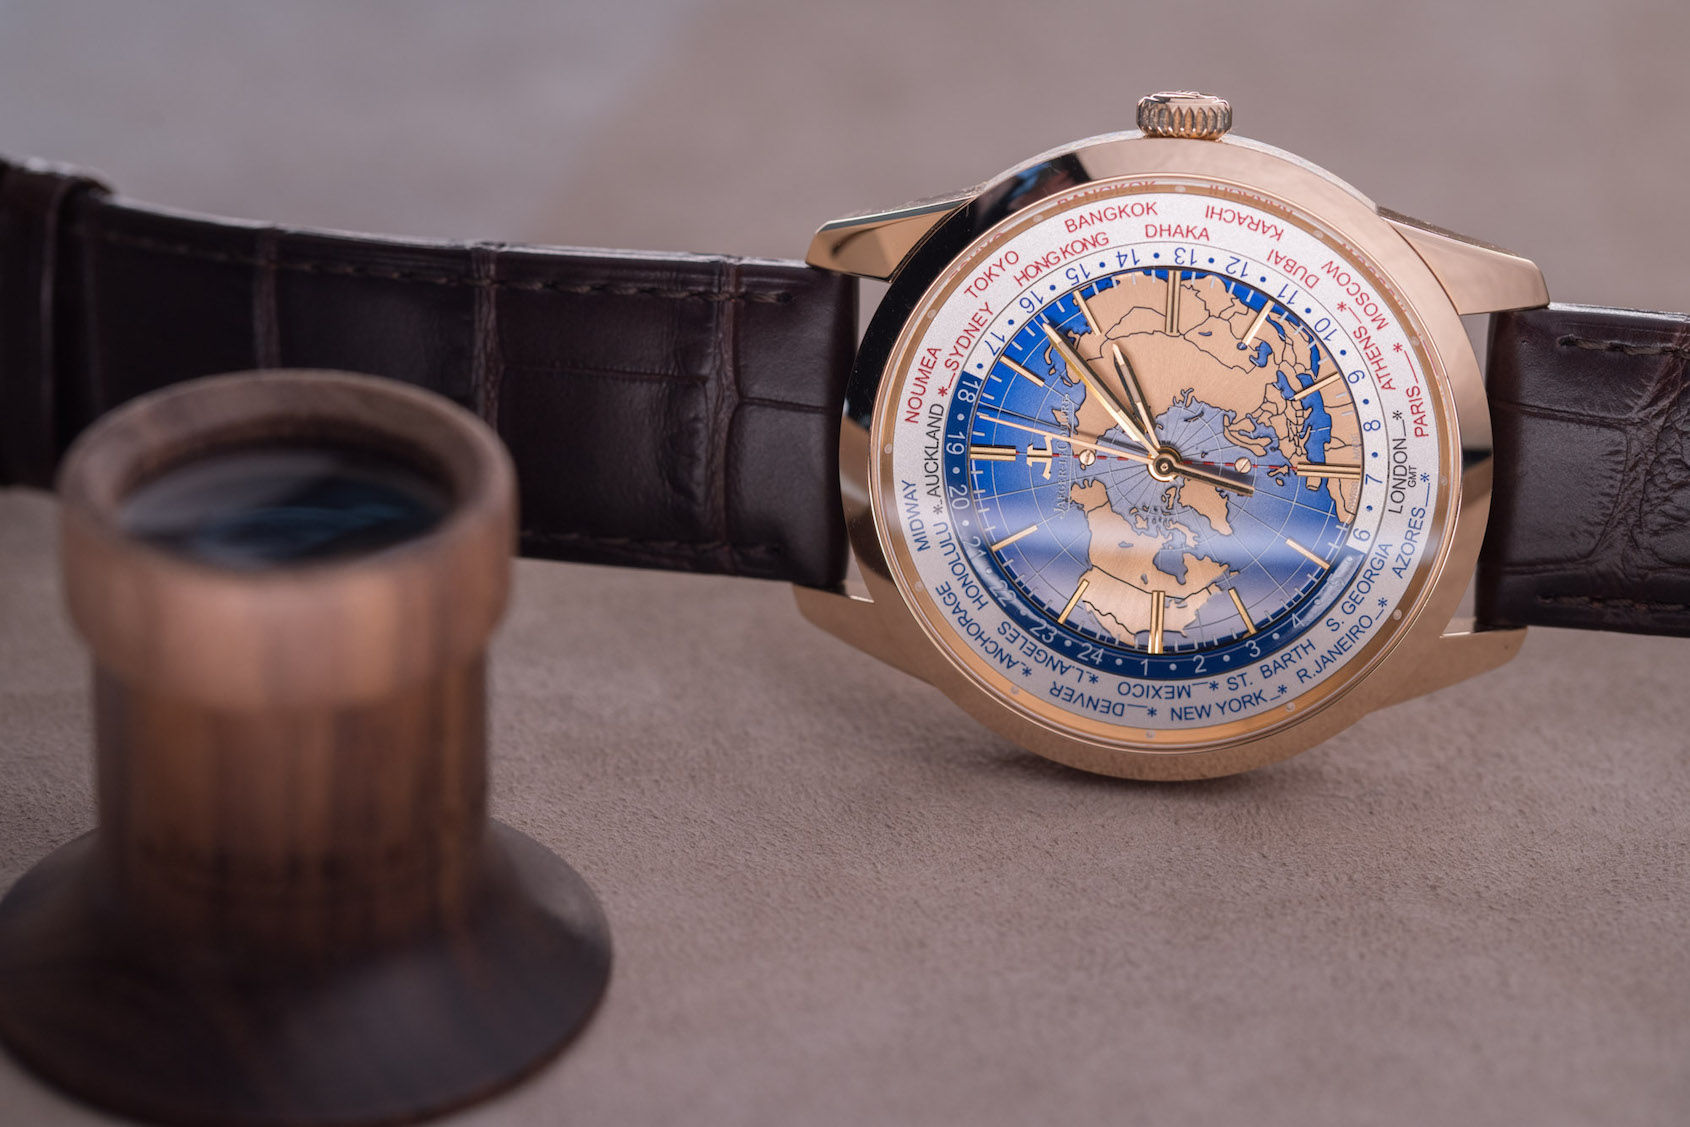 Jaeger-LeCoultre Geophysic Universal Time rose gold version hands on  02